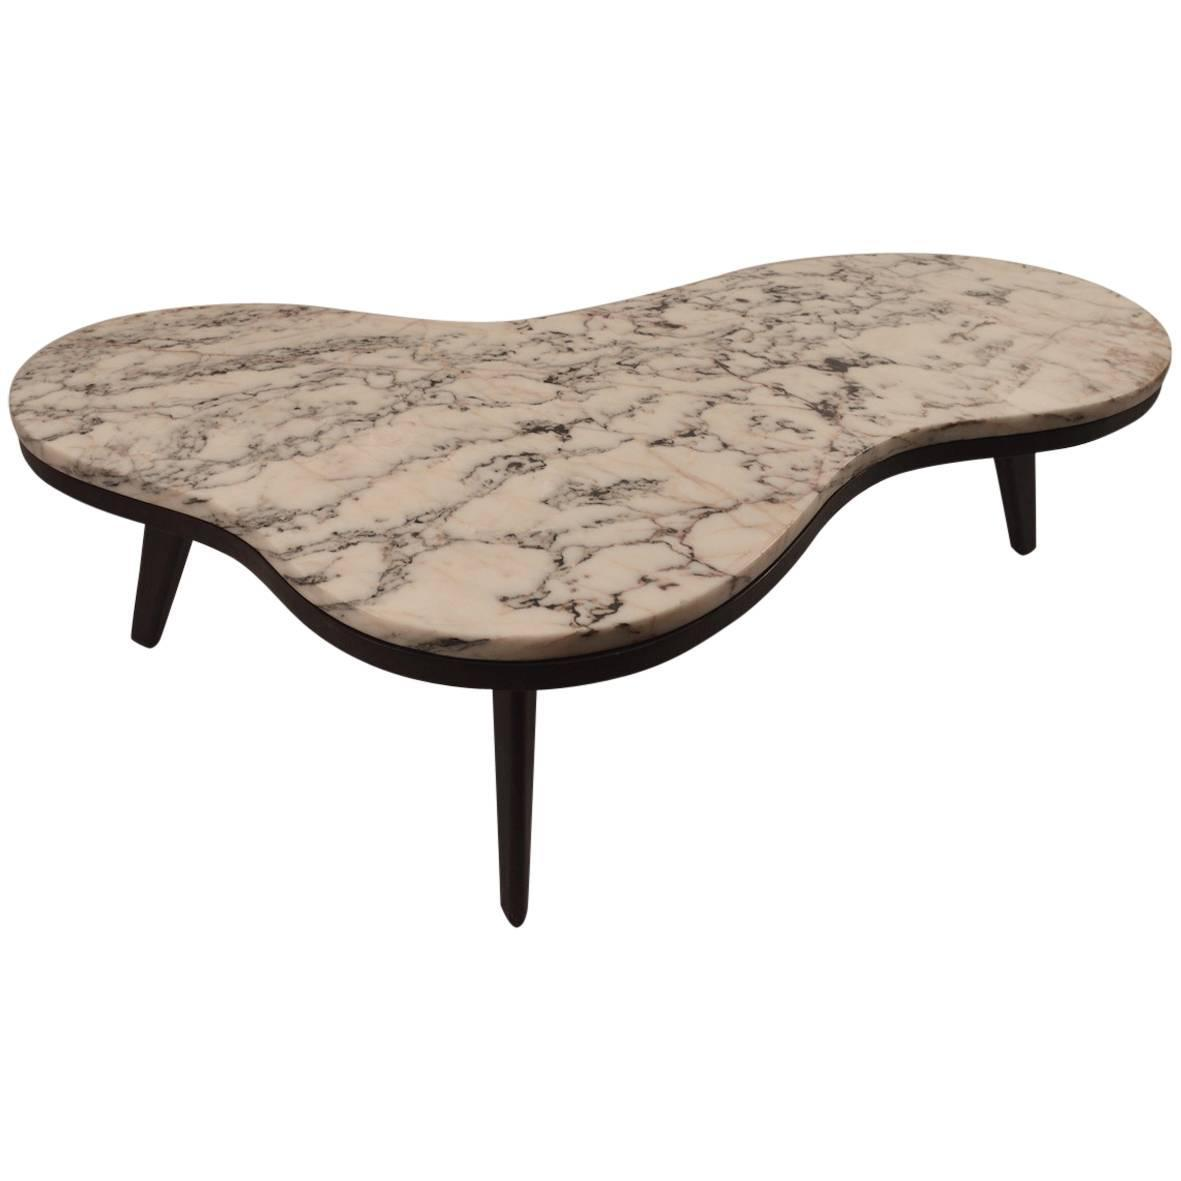 Free Form Marble Top Coffee Table At 1stdibs